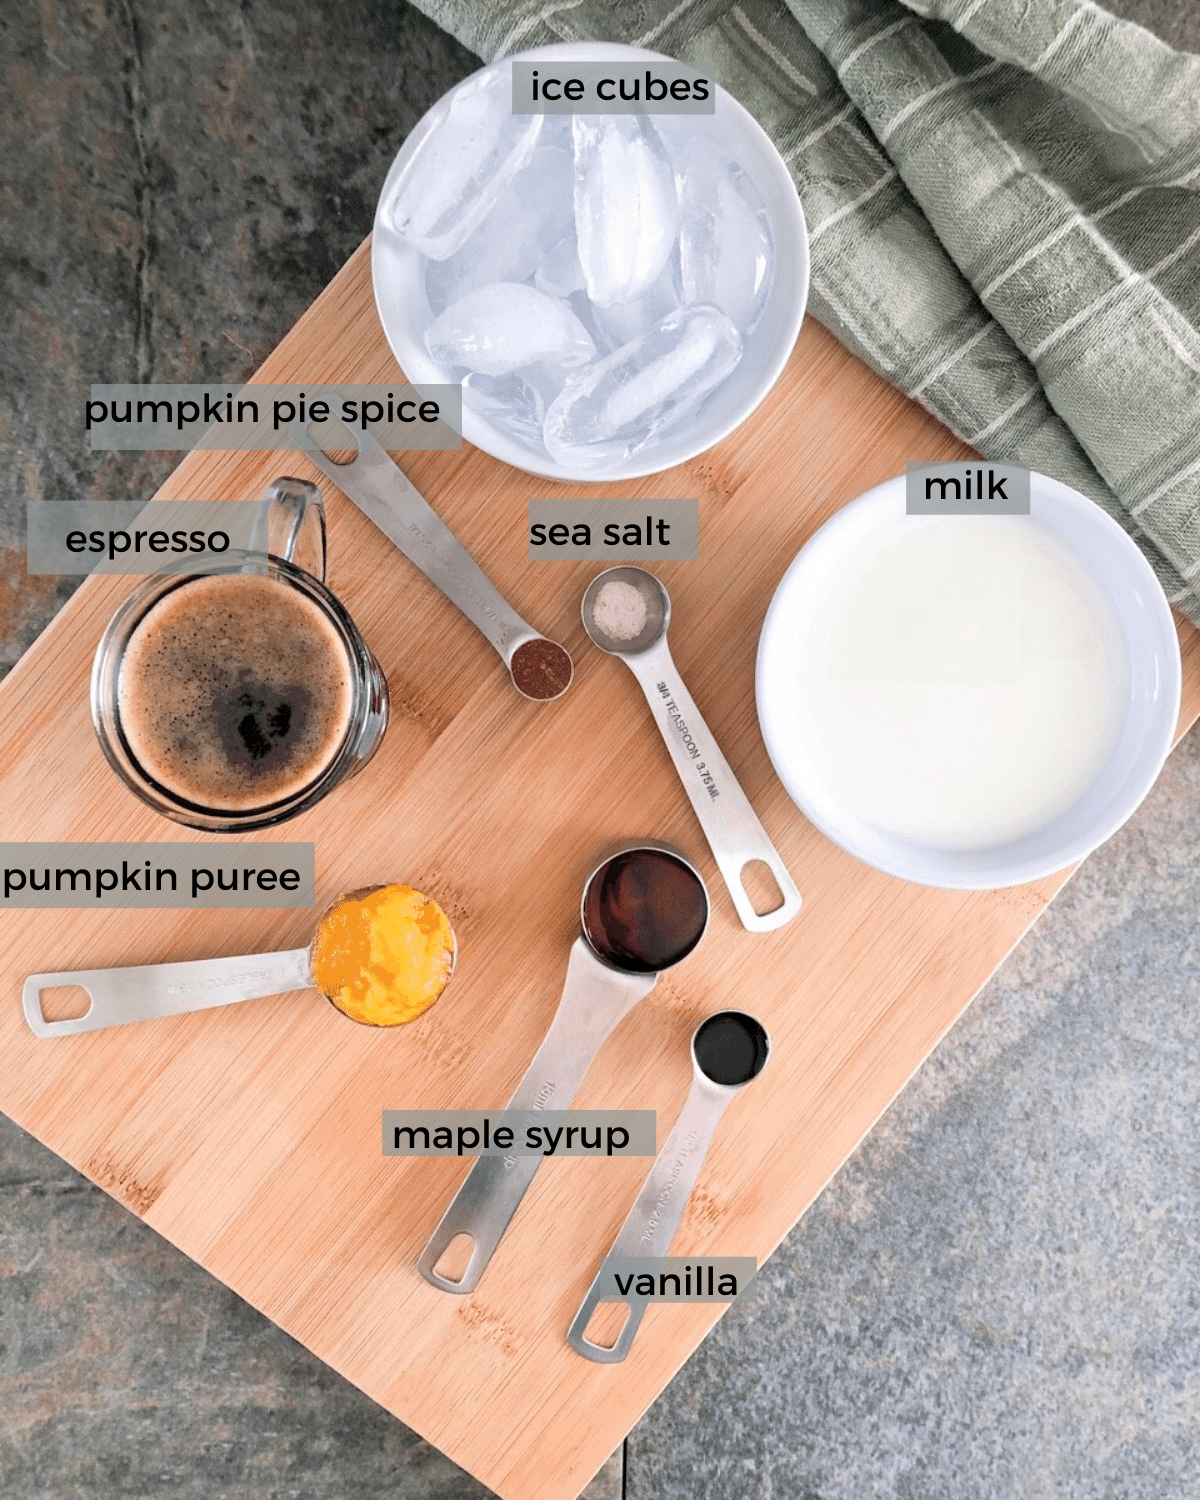 Ingredients for homemade iced pumpkin spice latte on a wooden cutting board